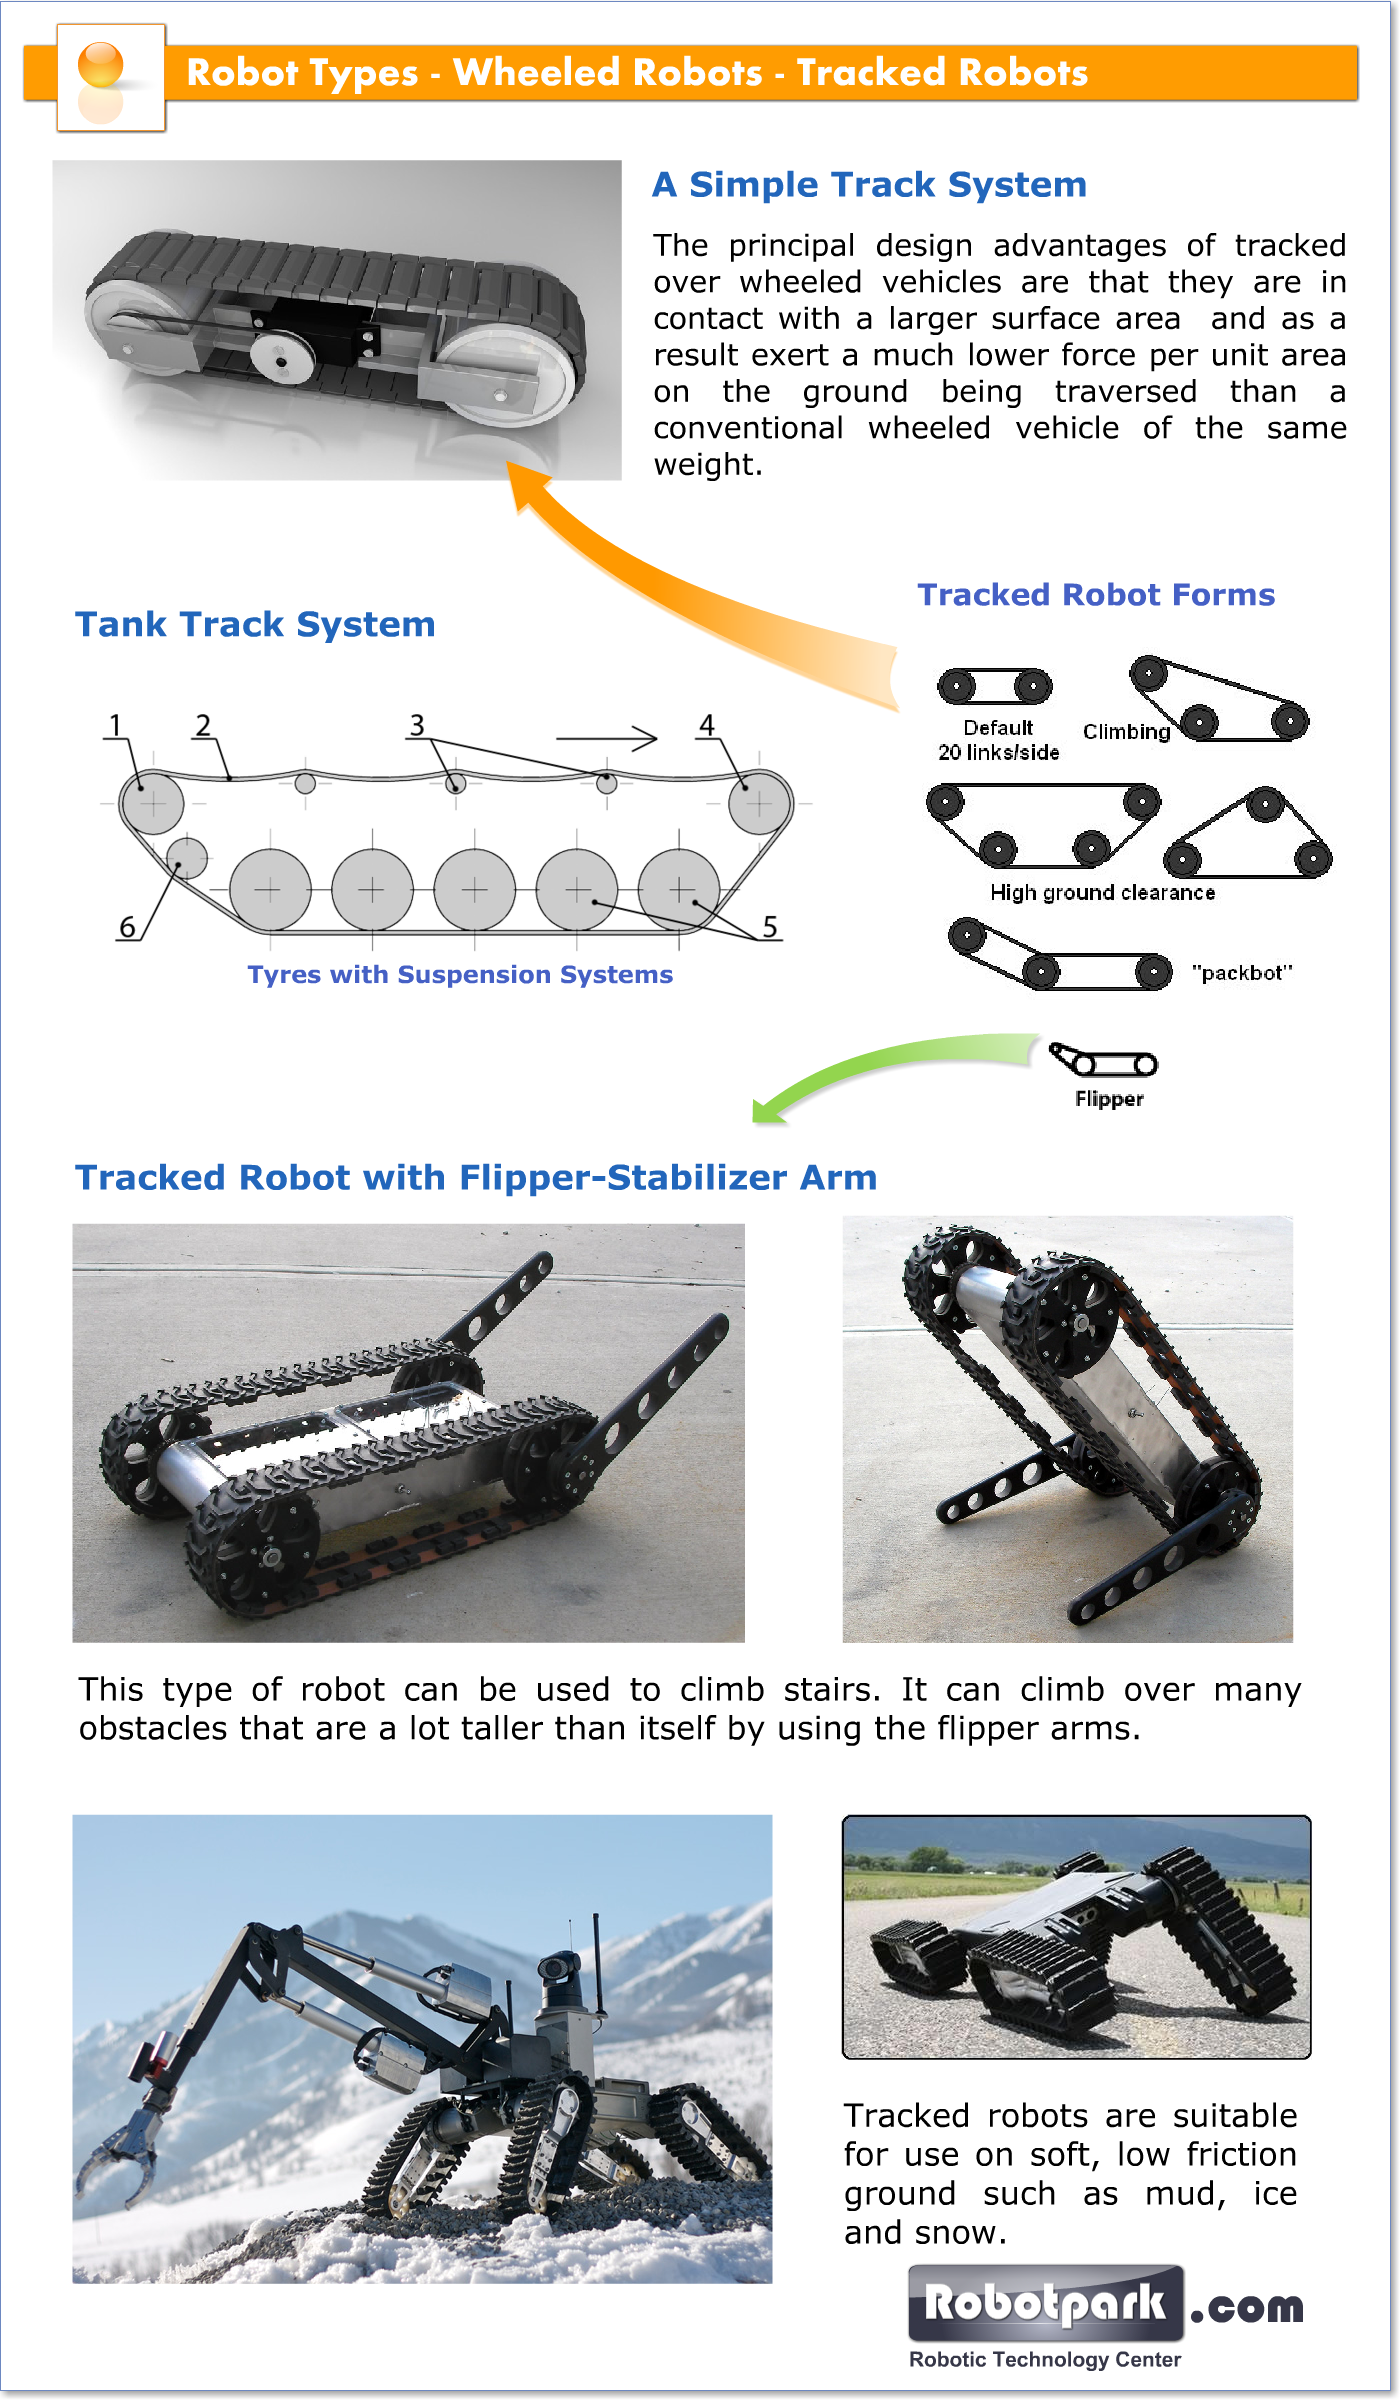 Tracks For Vehicles >> TRACKED Robots - Robotpark ACADEMY